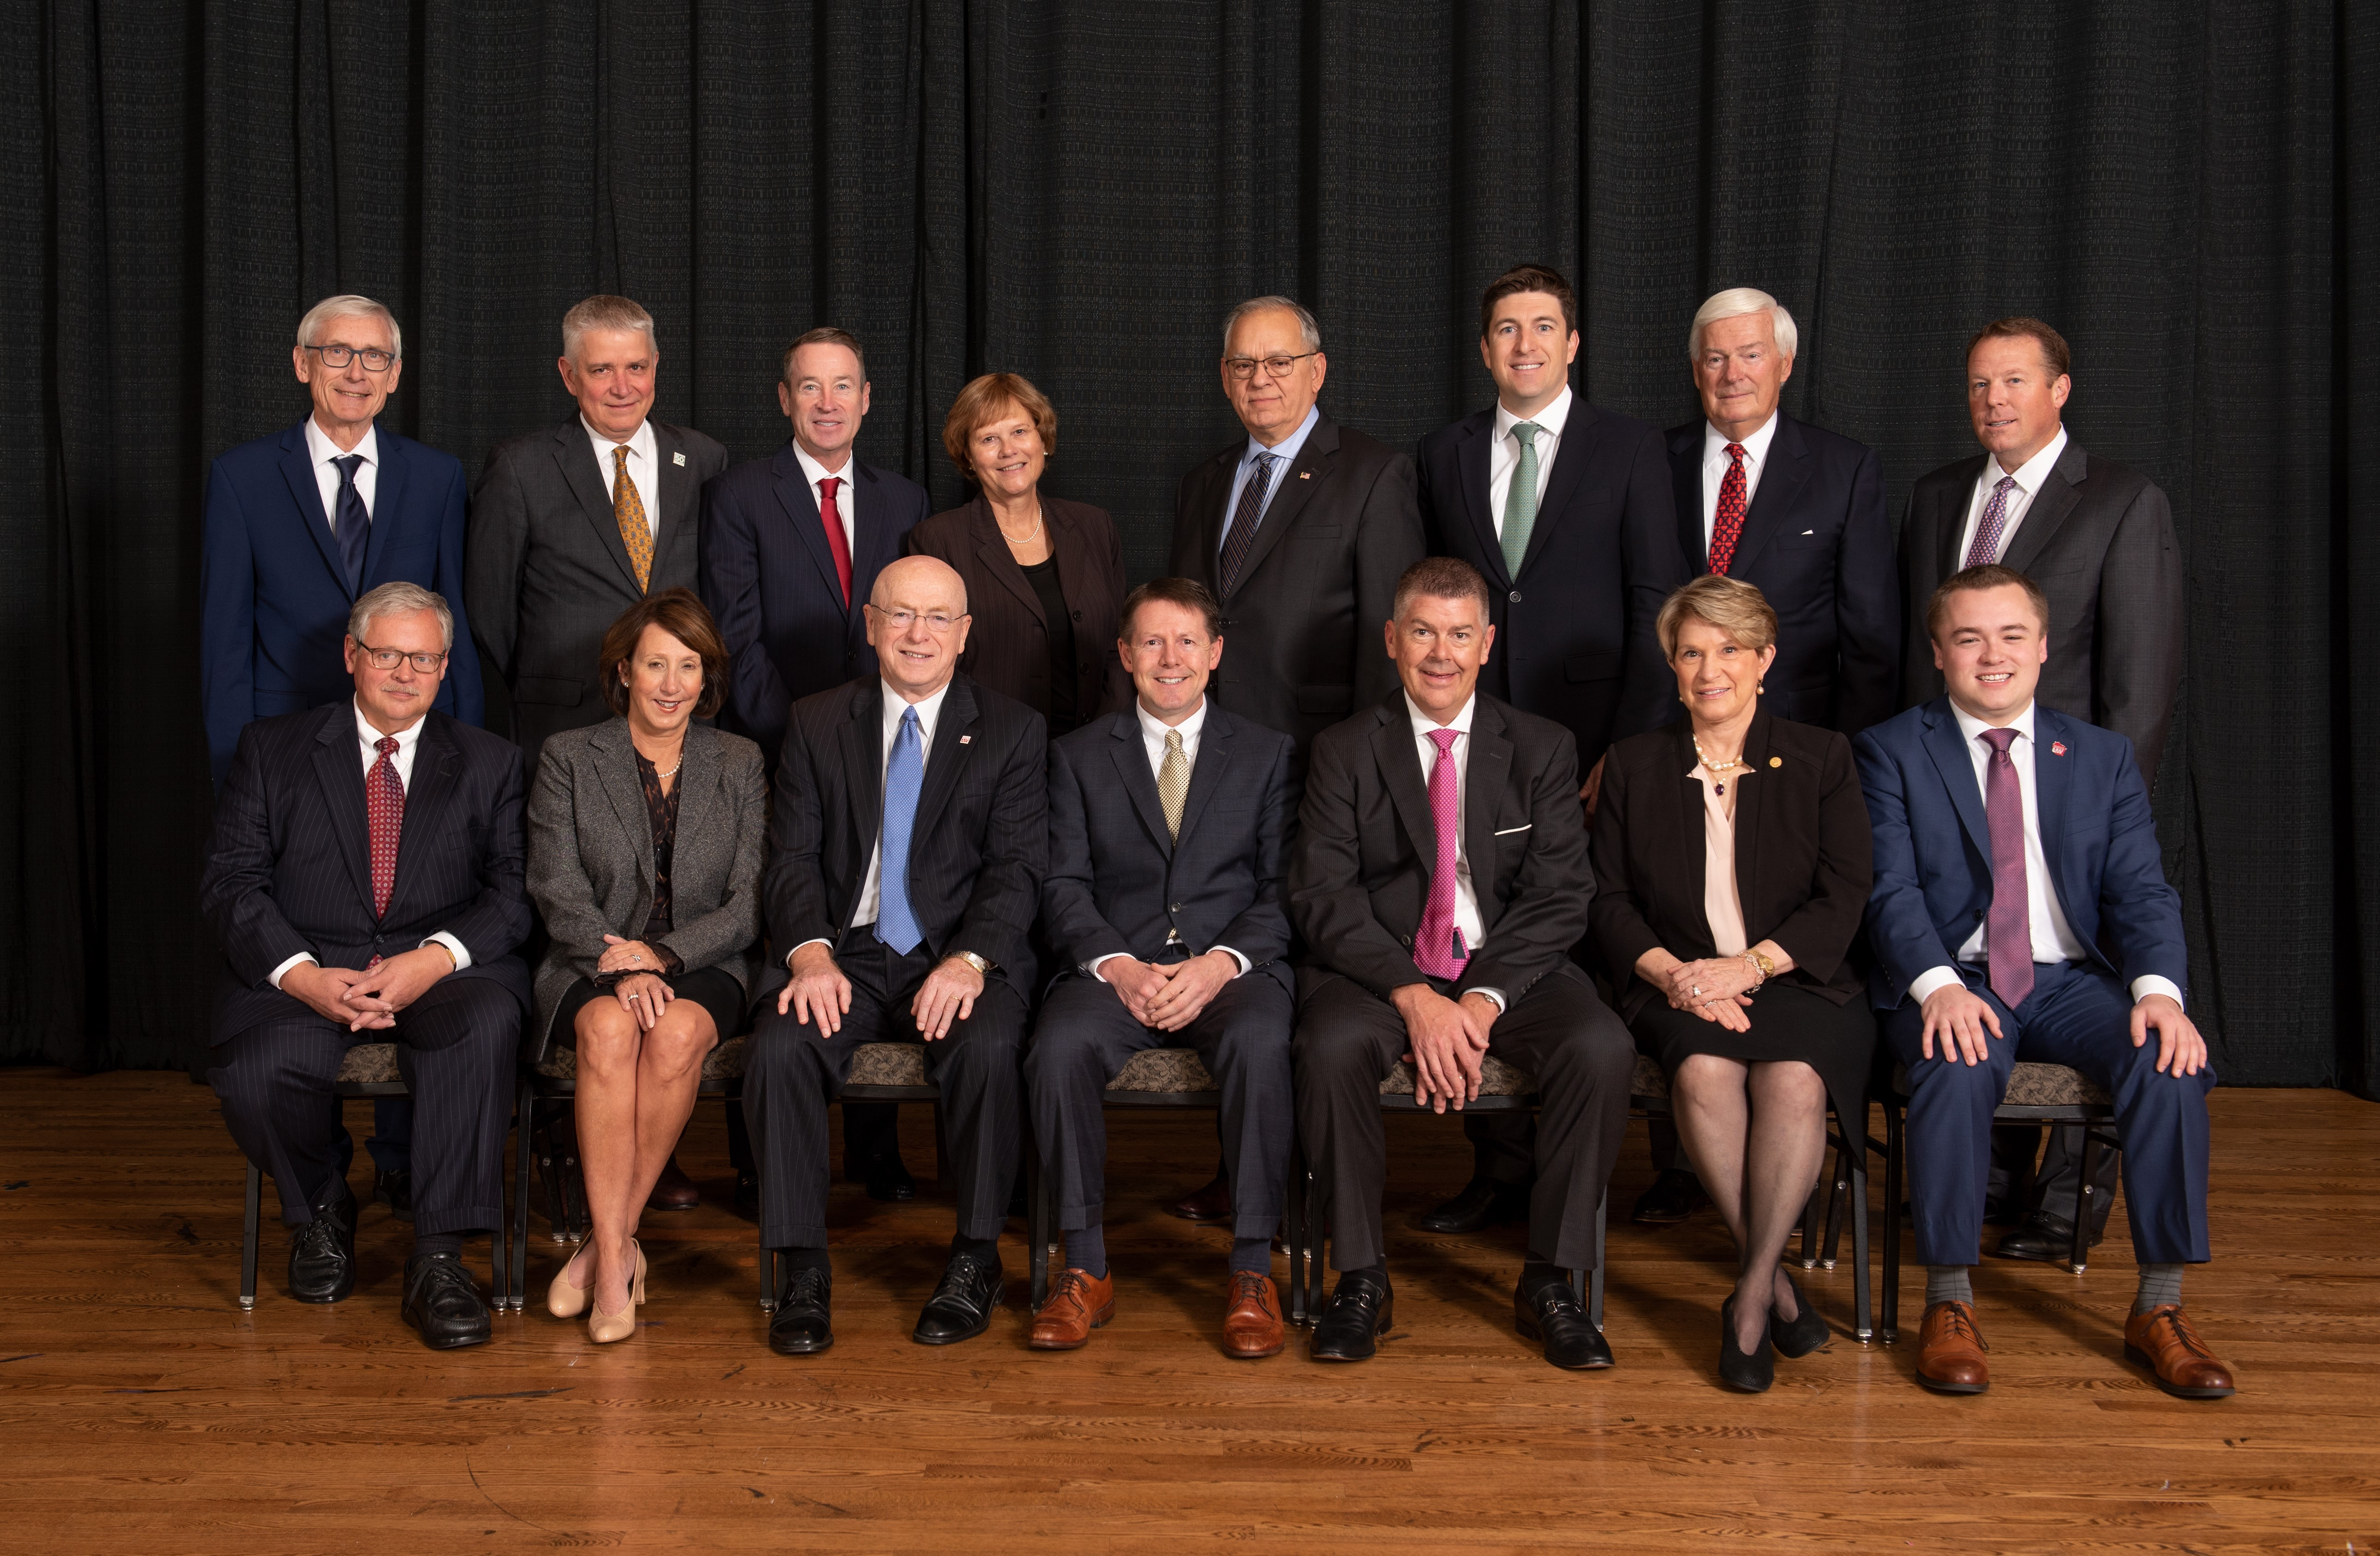 October 2018 Group Portrait of the UW System Board of Regents